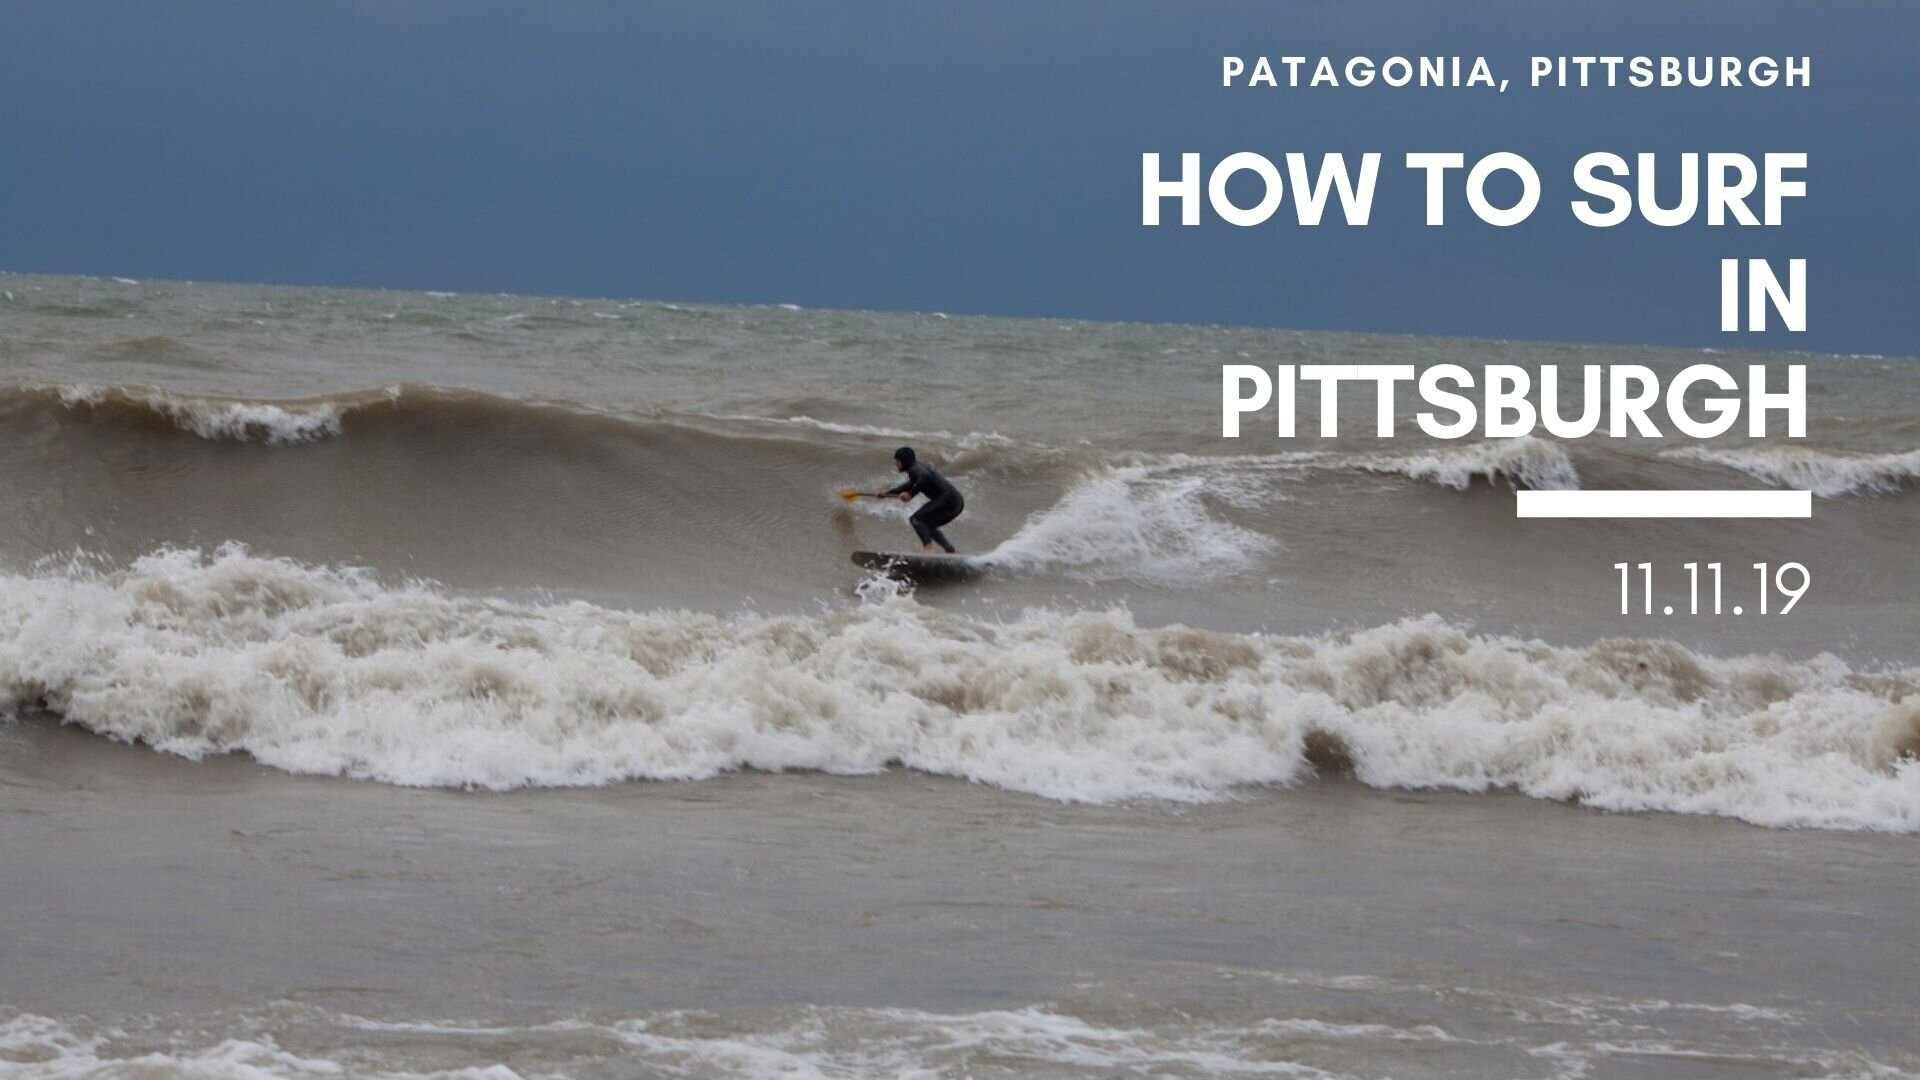 How to surf in pittsburgh.jpg